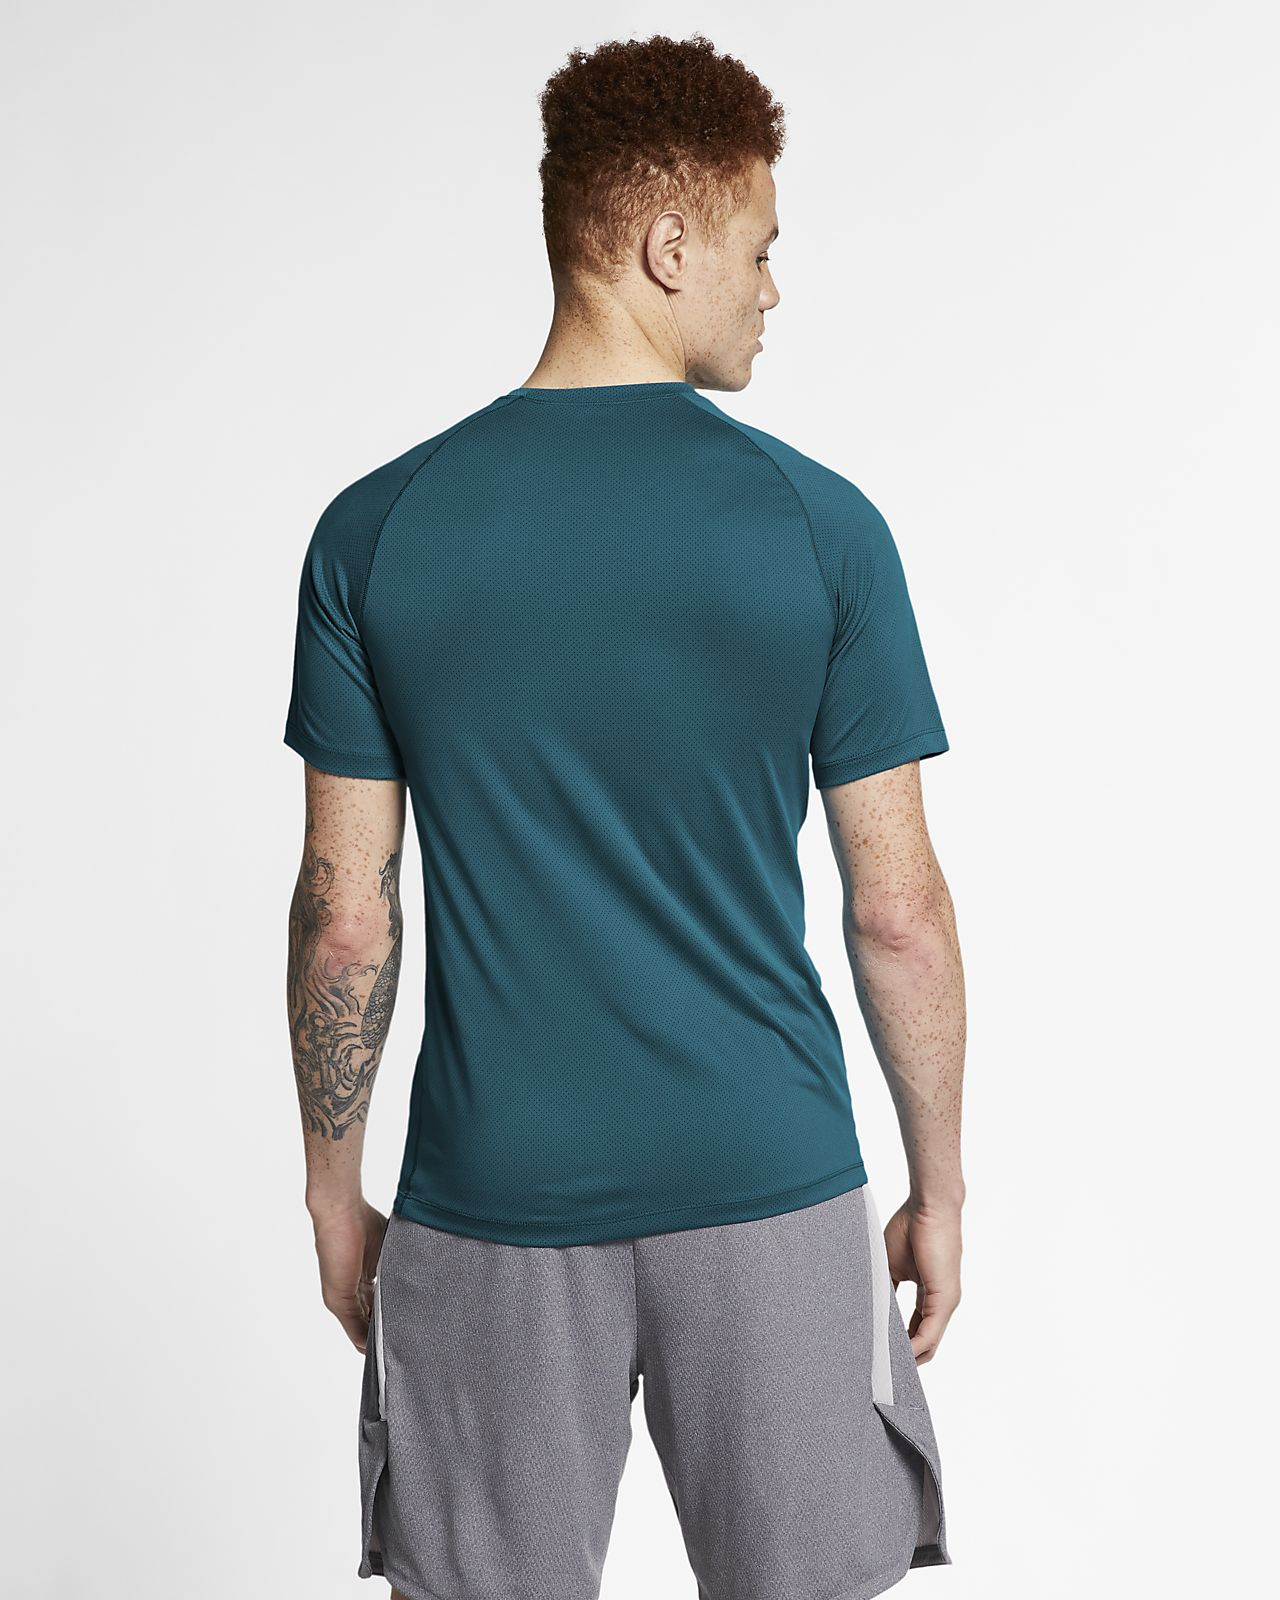 253c6e85 Nike Pro Men's Short-Sleeve Top. Nike.com